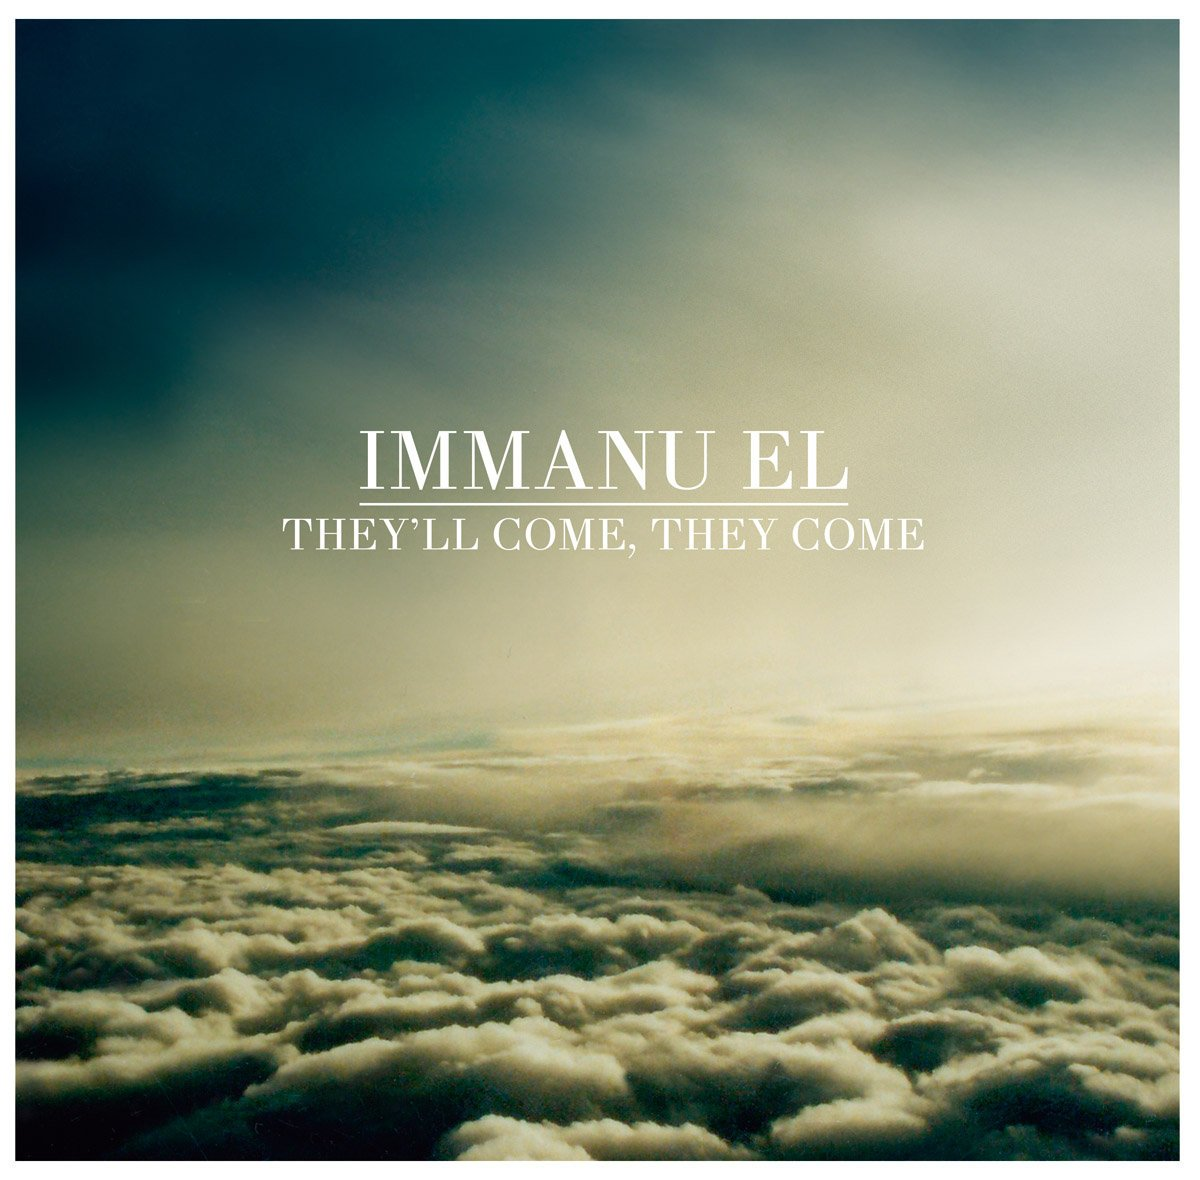 Immanu El – They'll Come, They Come